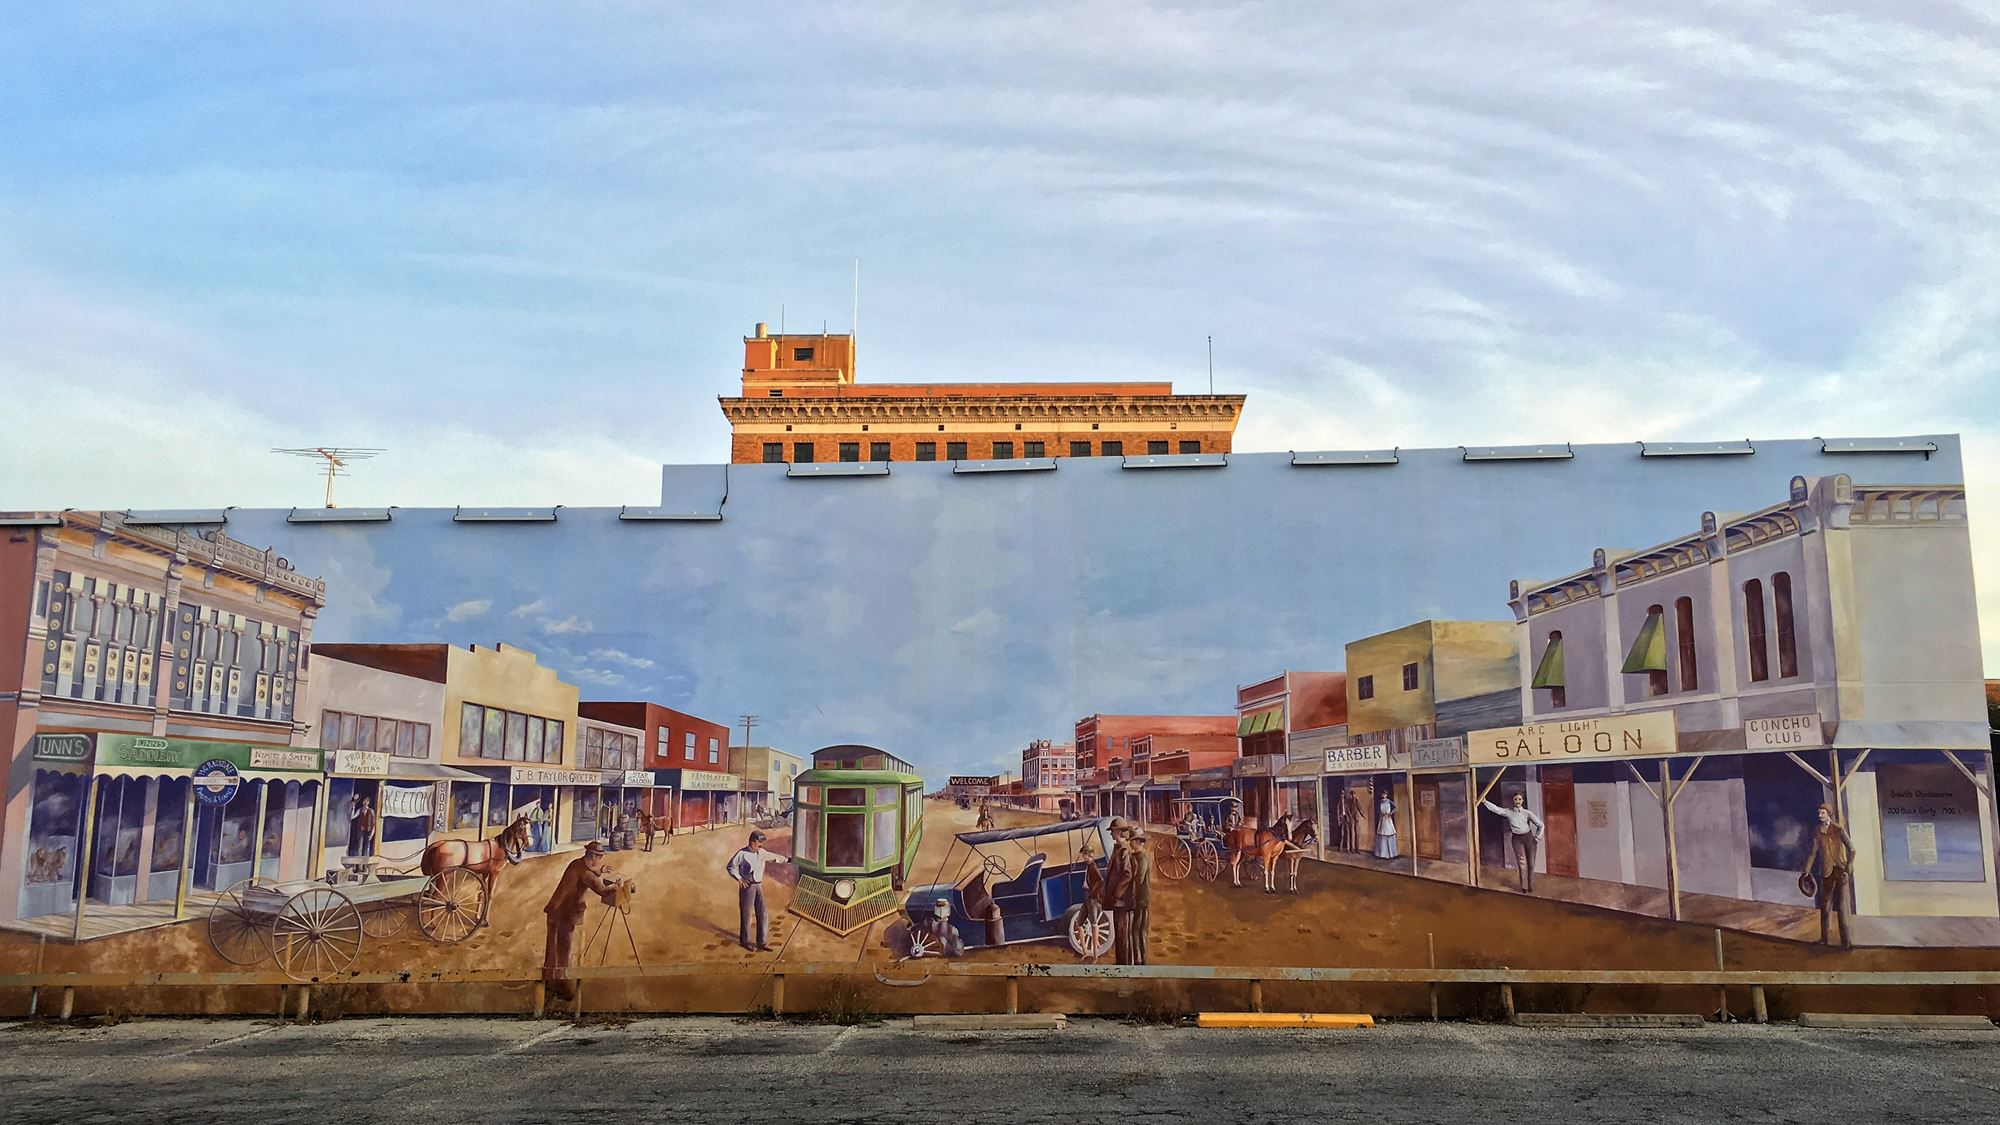 The Chadbourne Street Mural